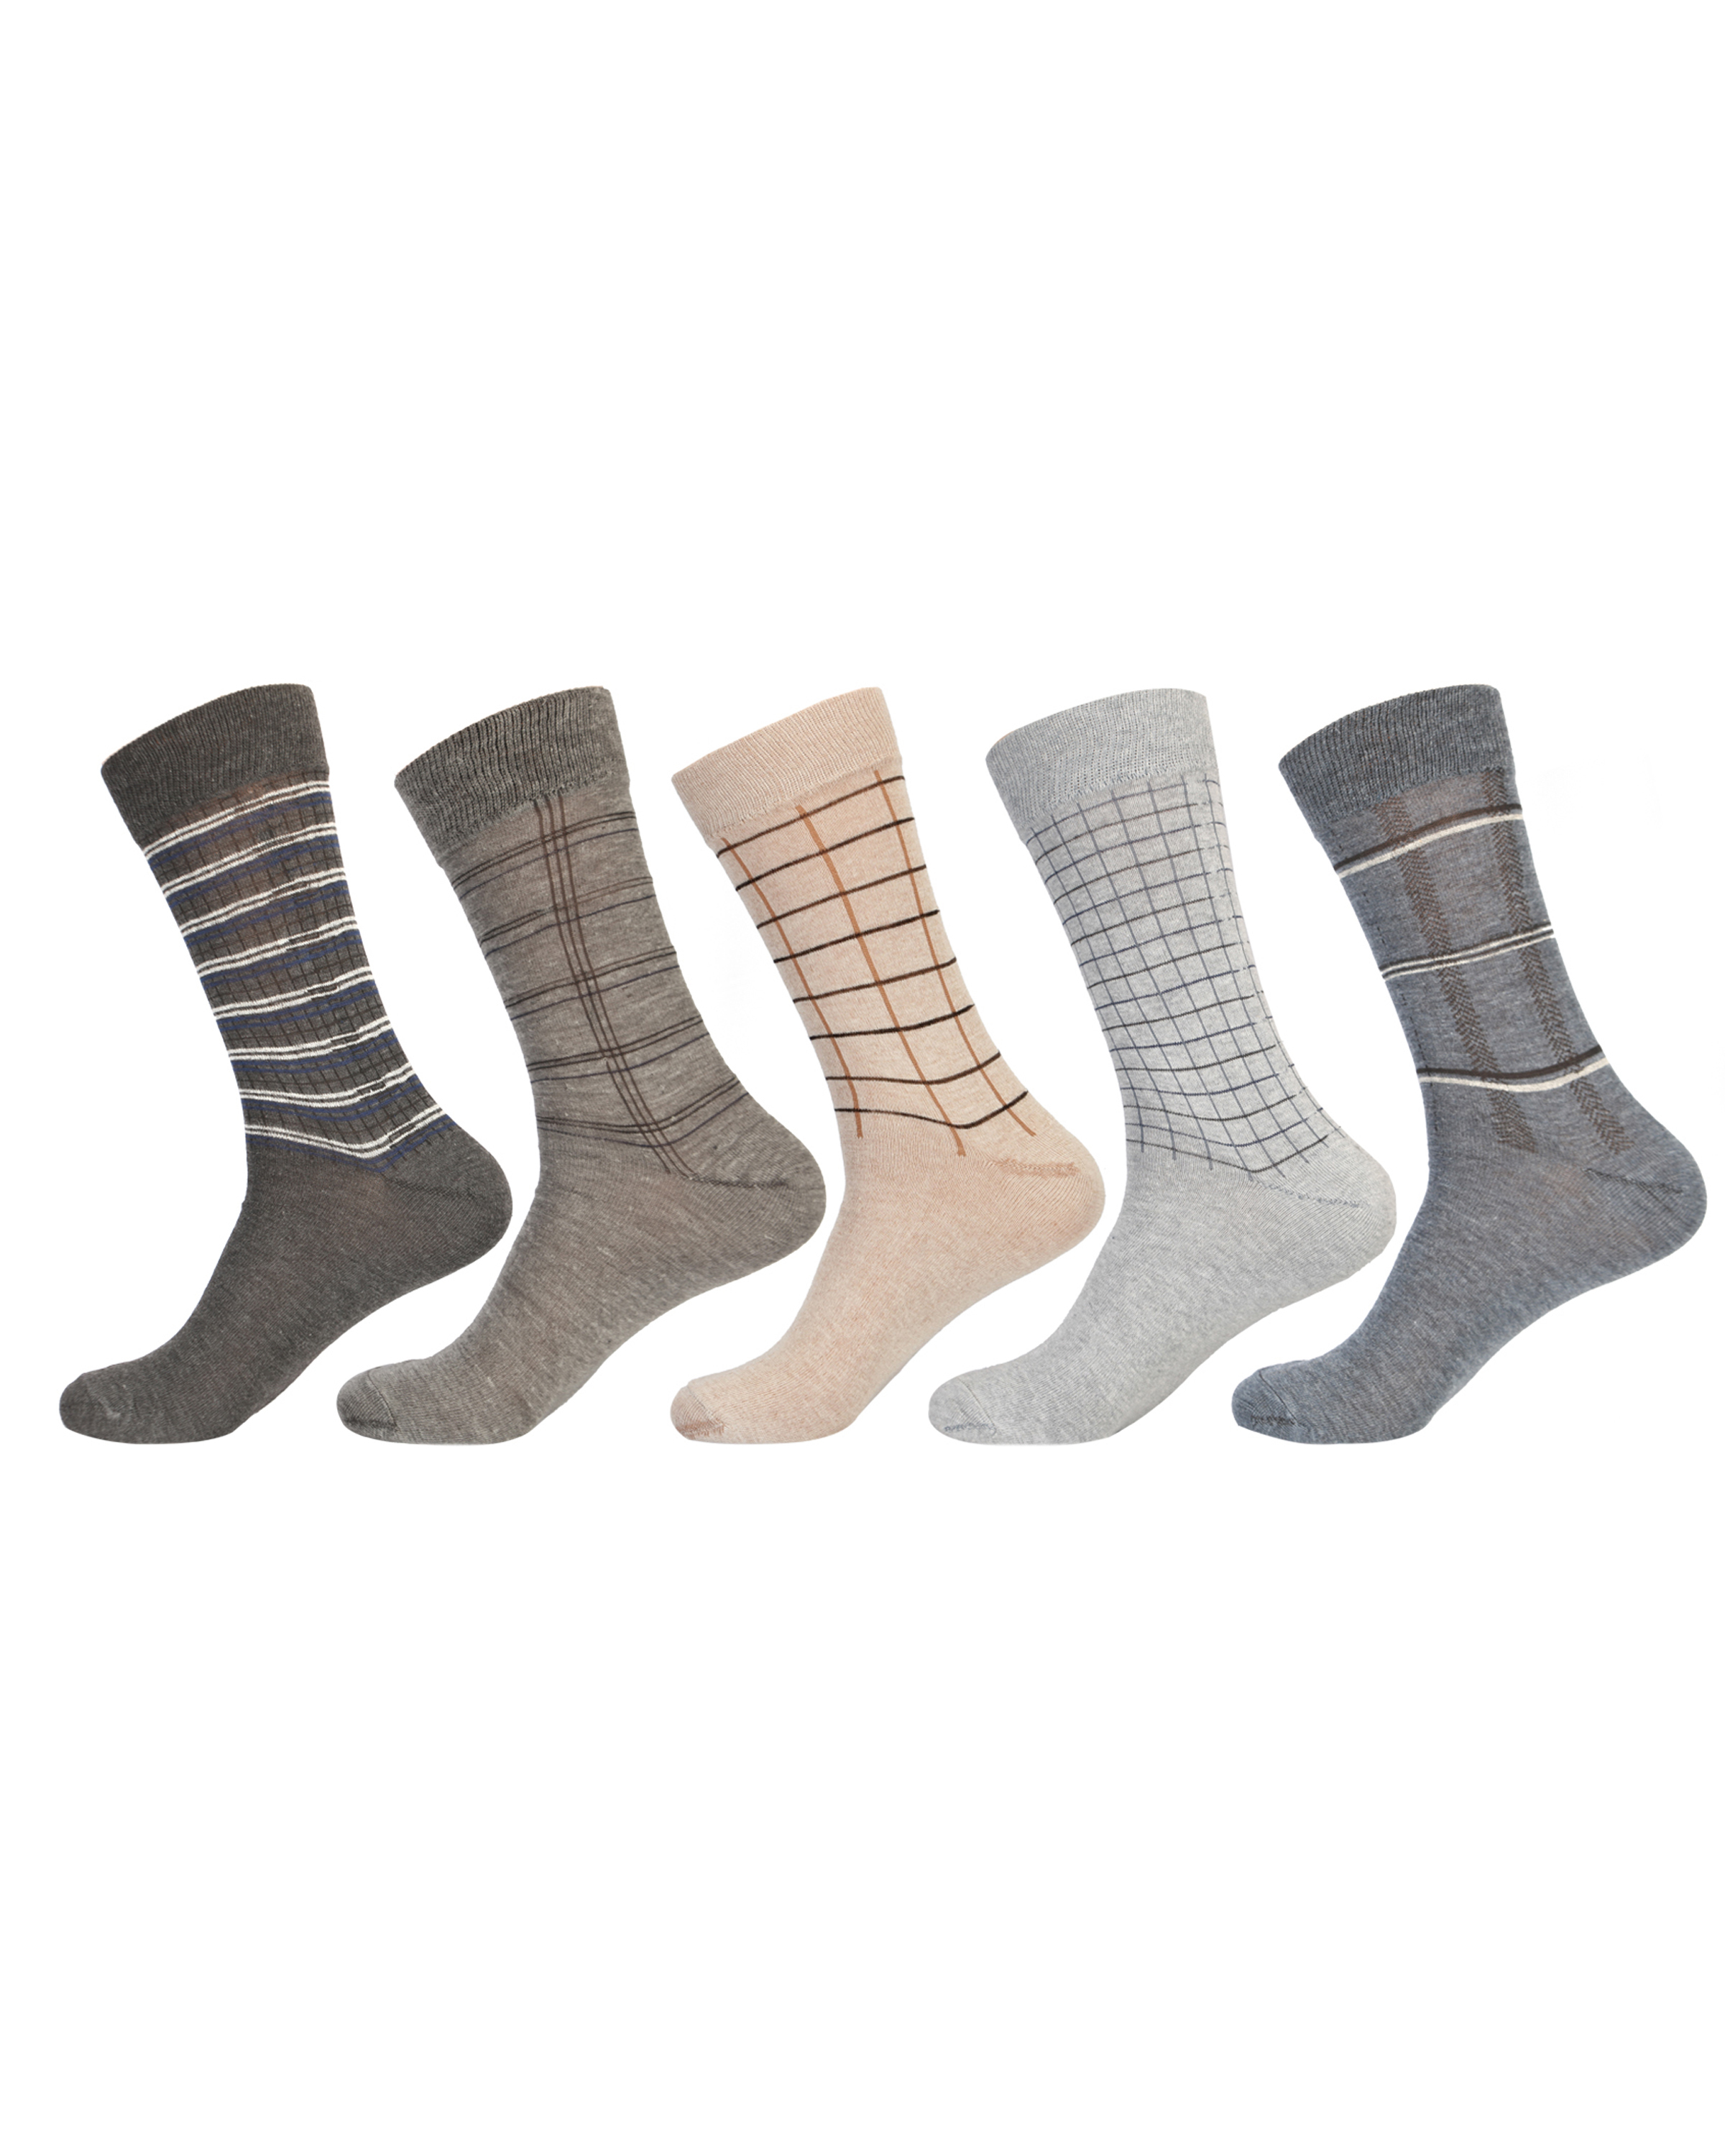 Men's Cotton Calf Length Ribbed Formal Socks